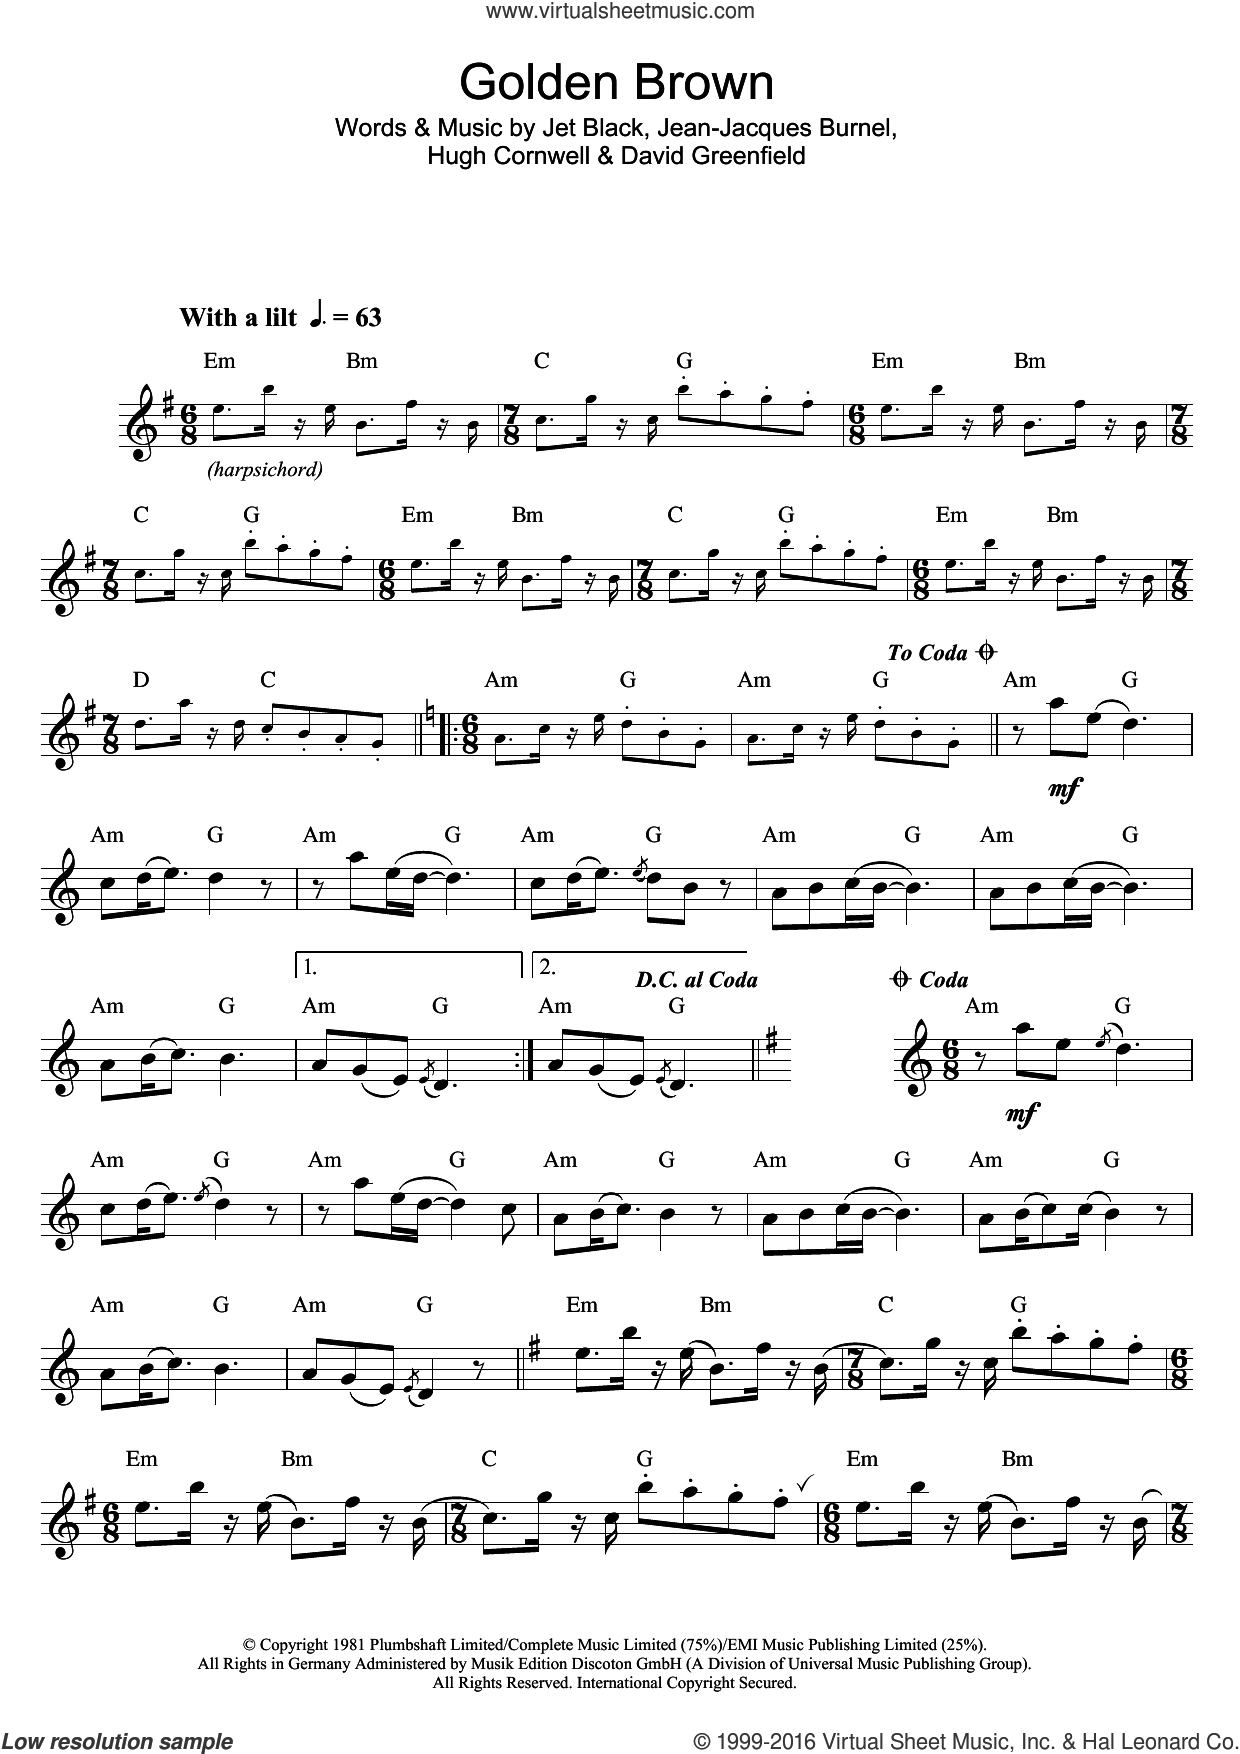 Golden Brown sheet music for saxophone solo by The Stranglers, David Greenfield, Hugh Cornwell, Jean-Jacques Burnel and Jet Black, intermediate skill level